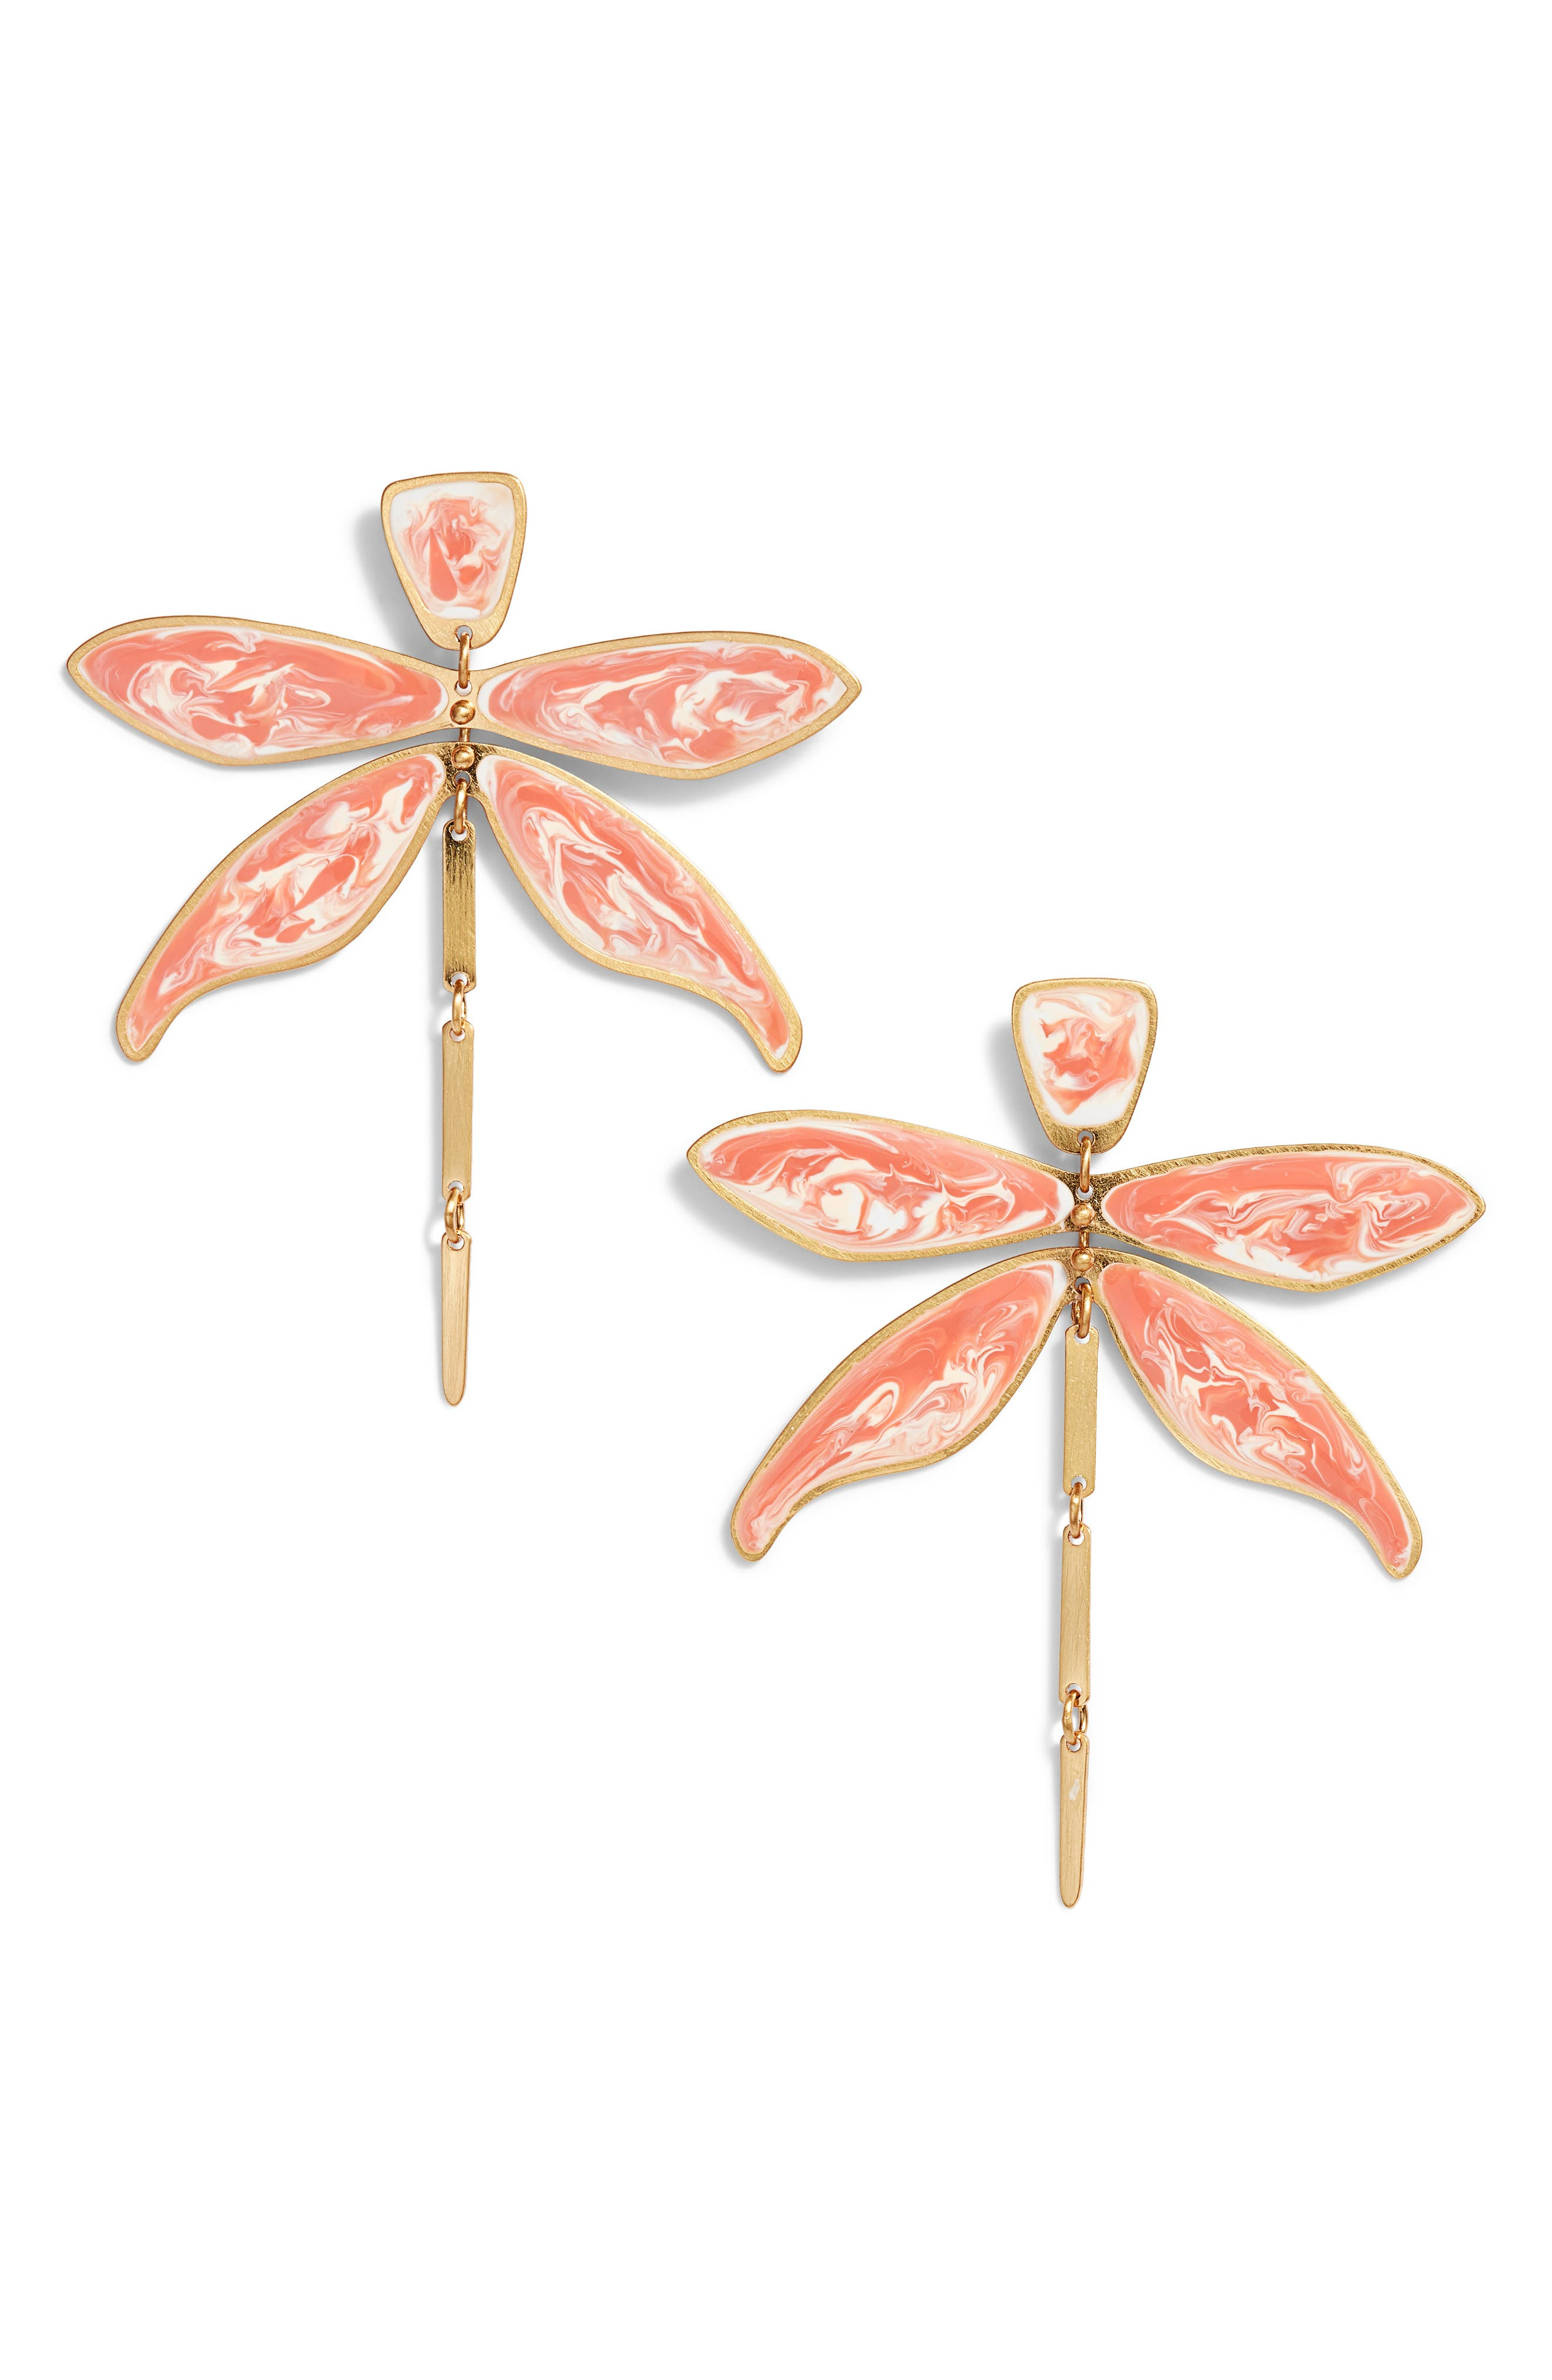 Articulated Dragonfly Earrings,                             Main thumbnail 3, color,